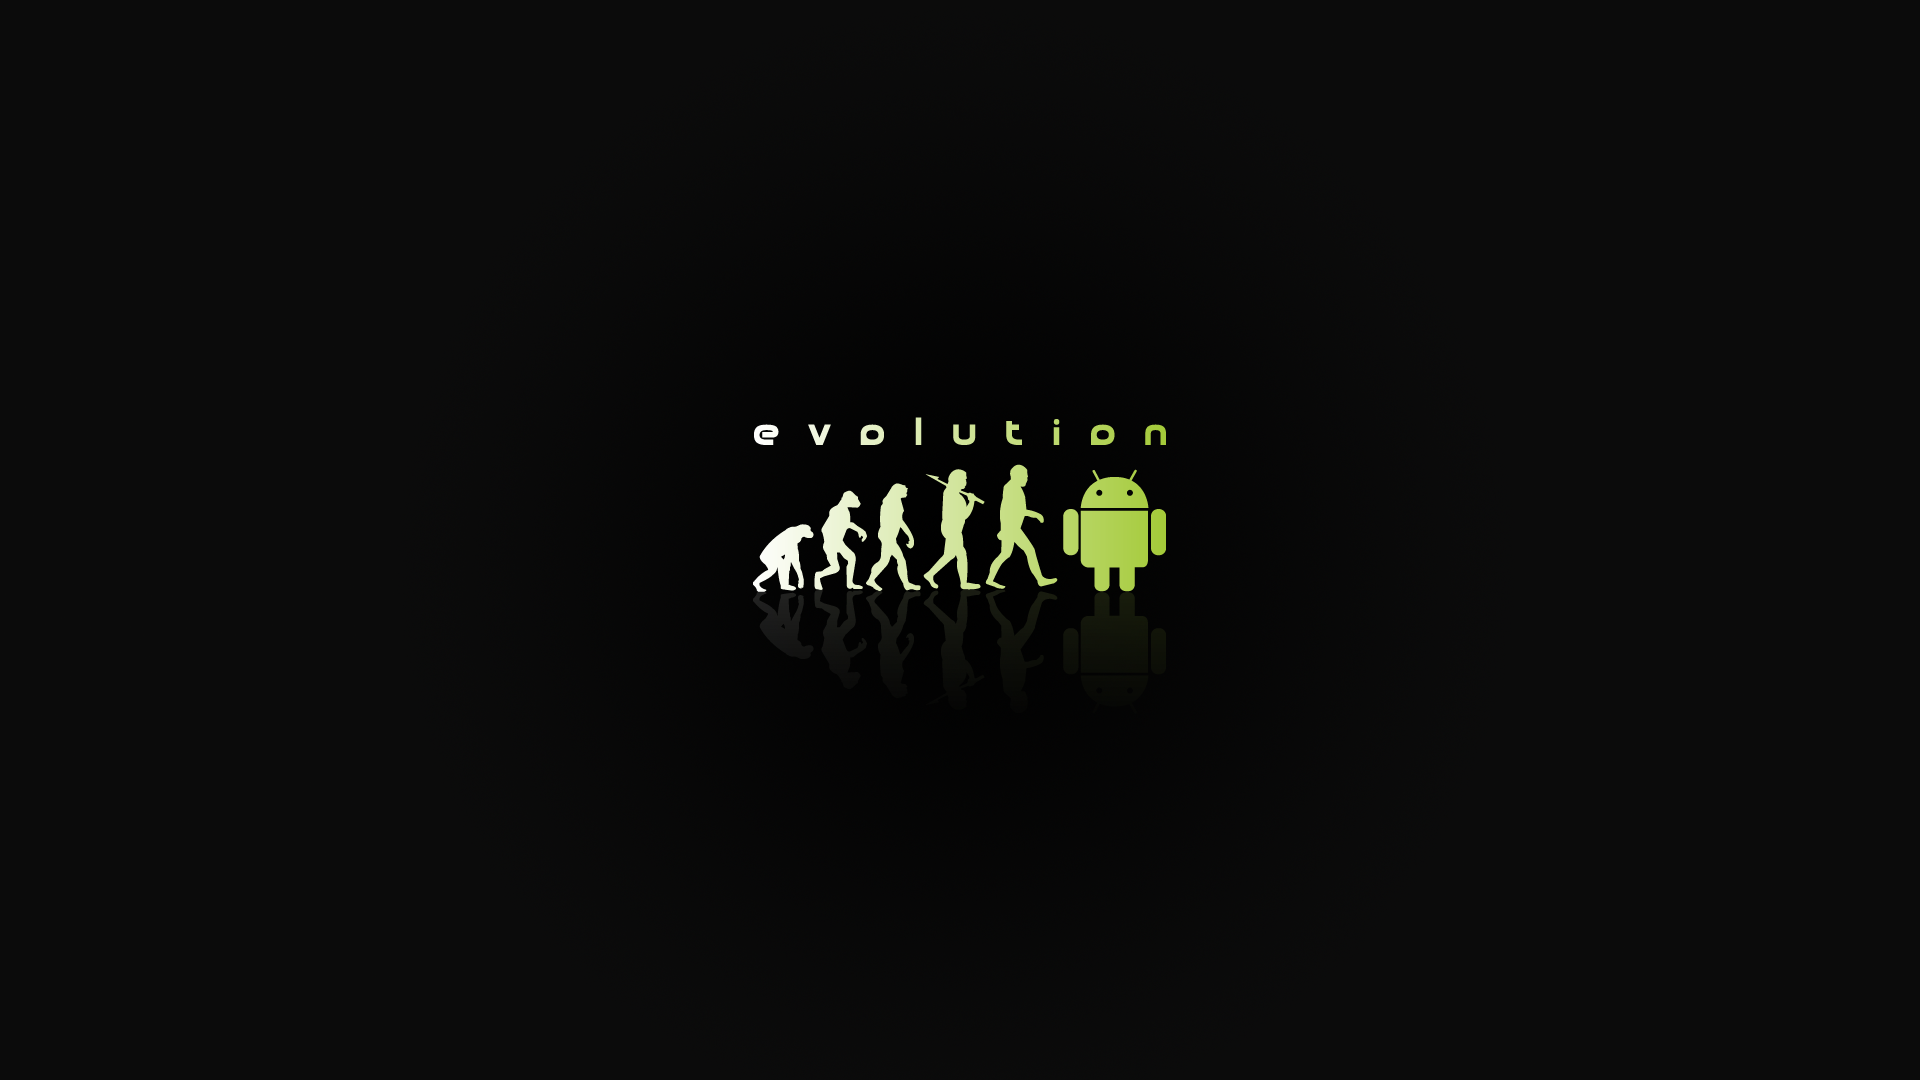 Android Evolution Wallpaper Computer Wallpaper